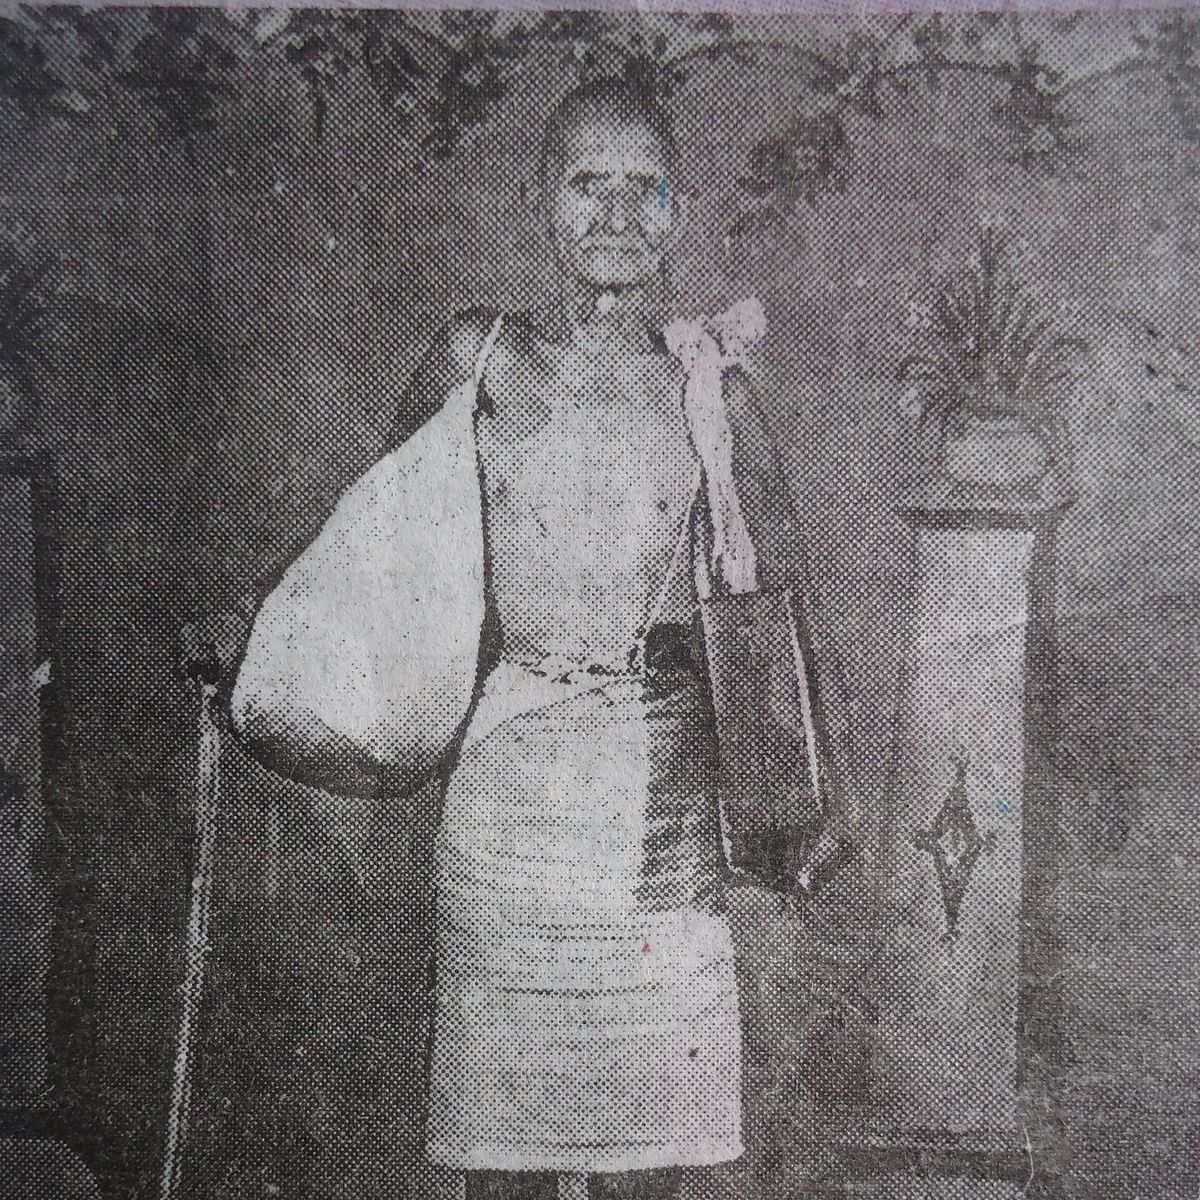 Trilochan Pokhrel: India's lost freedom fighter from Sikkim